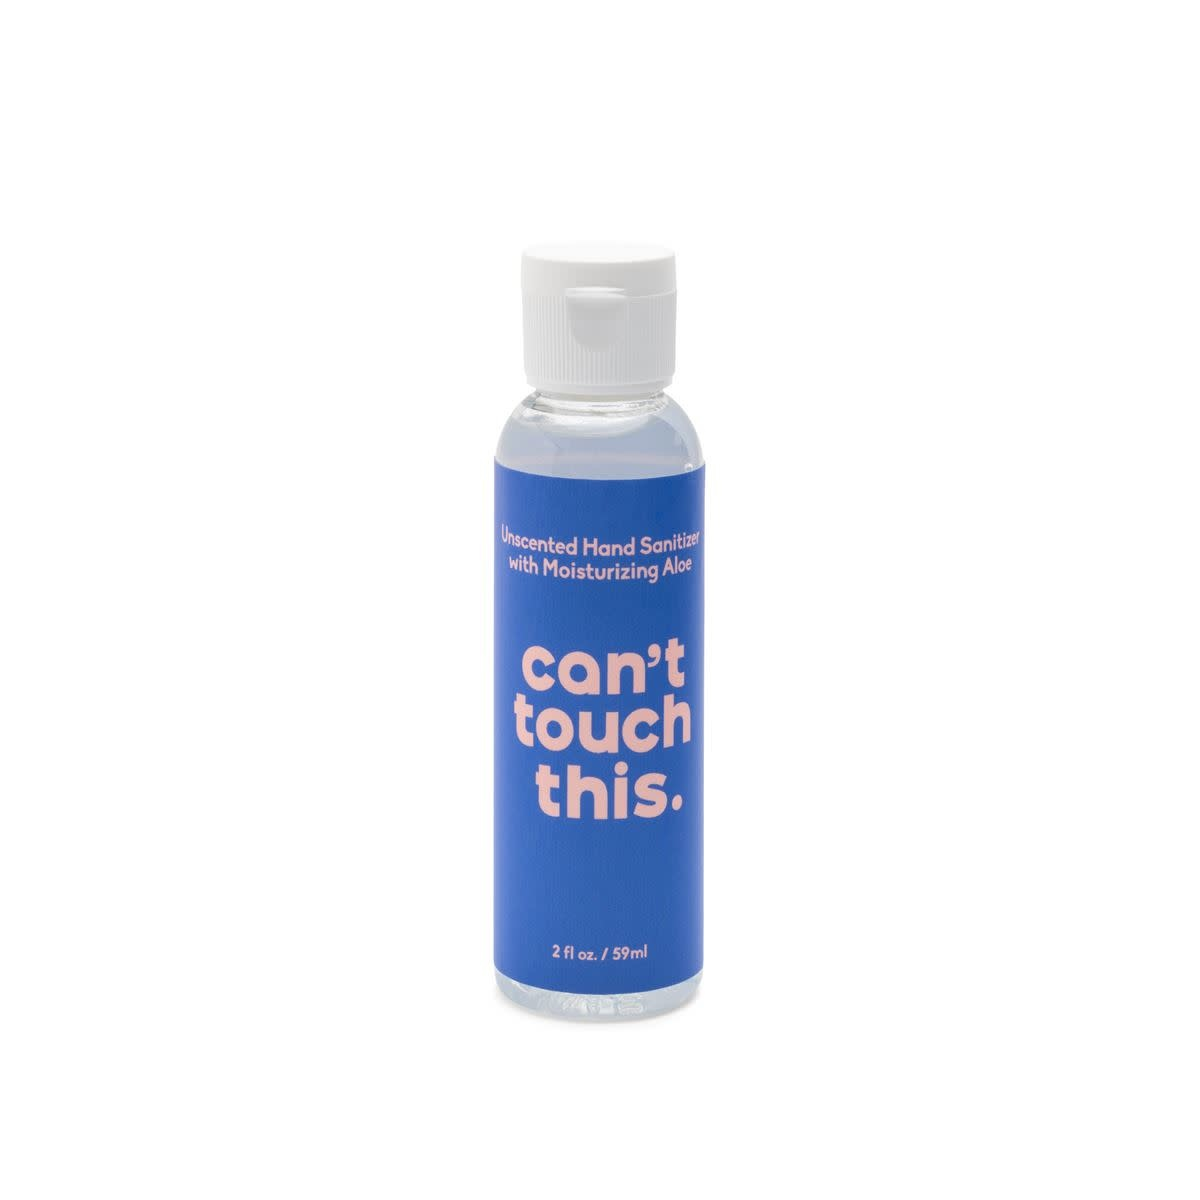 Paddywax - PA PA APPR - Can't Touch This (purple) Hand Sanitizer